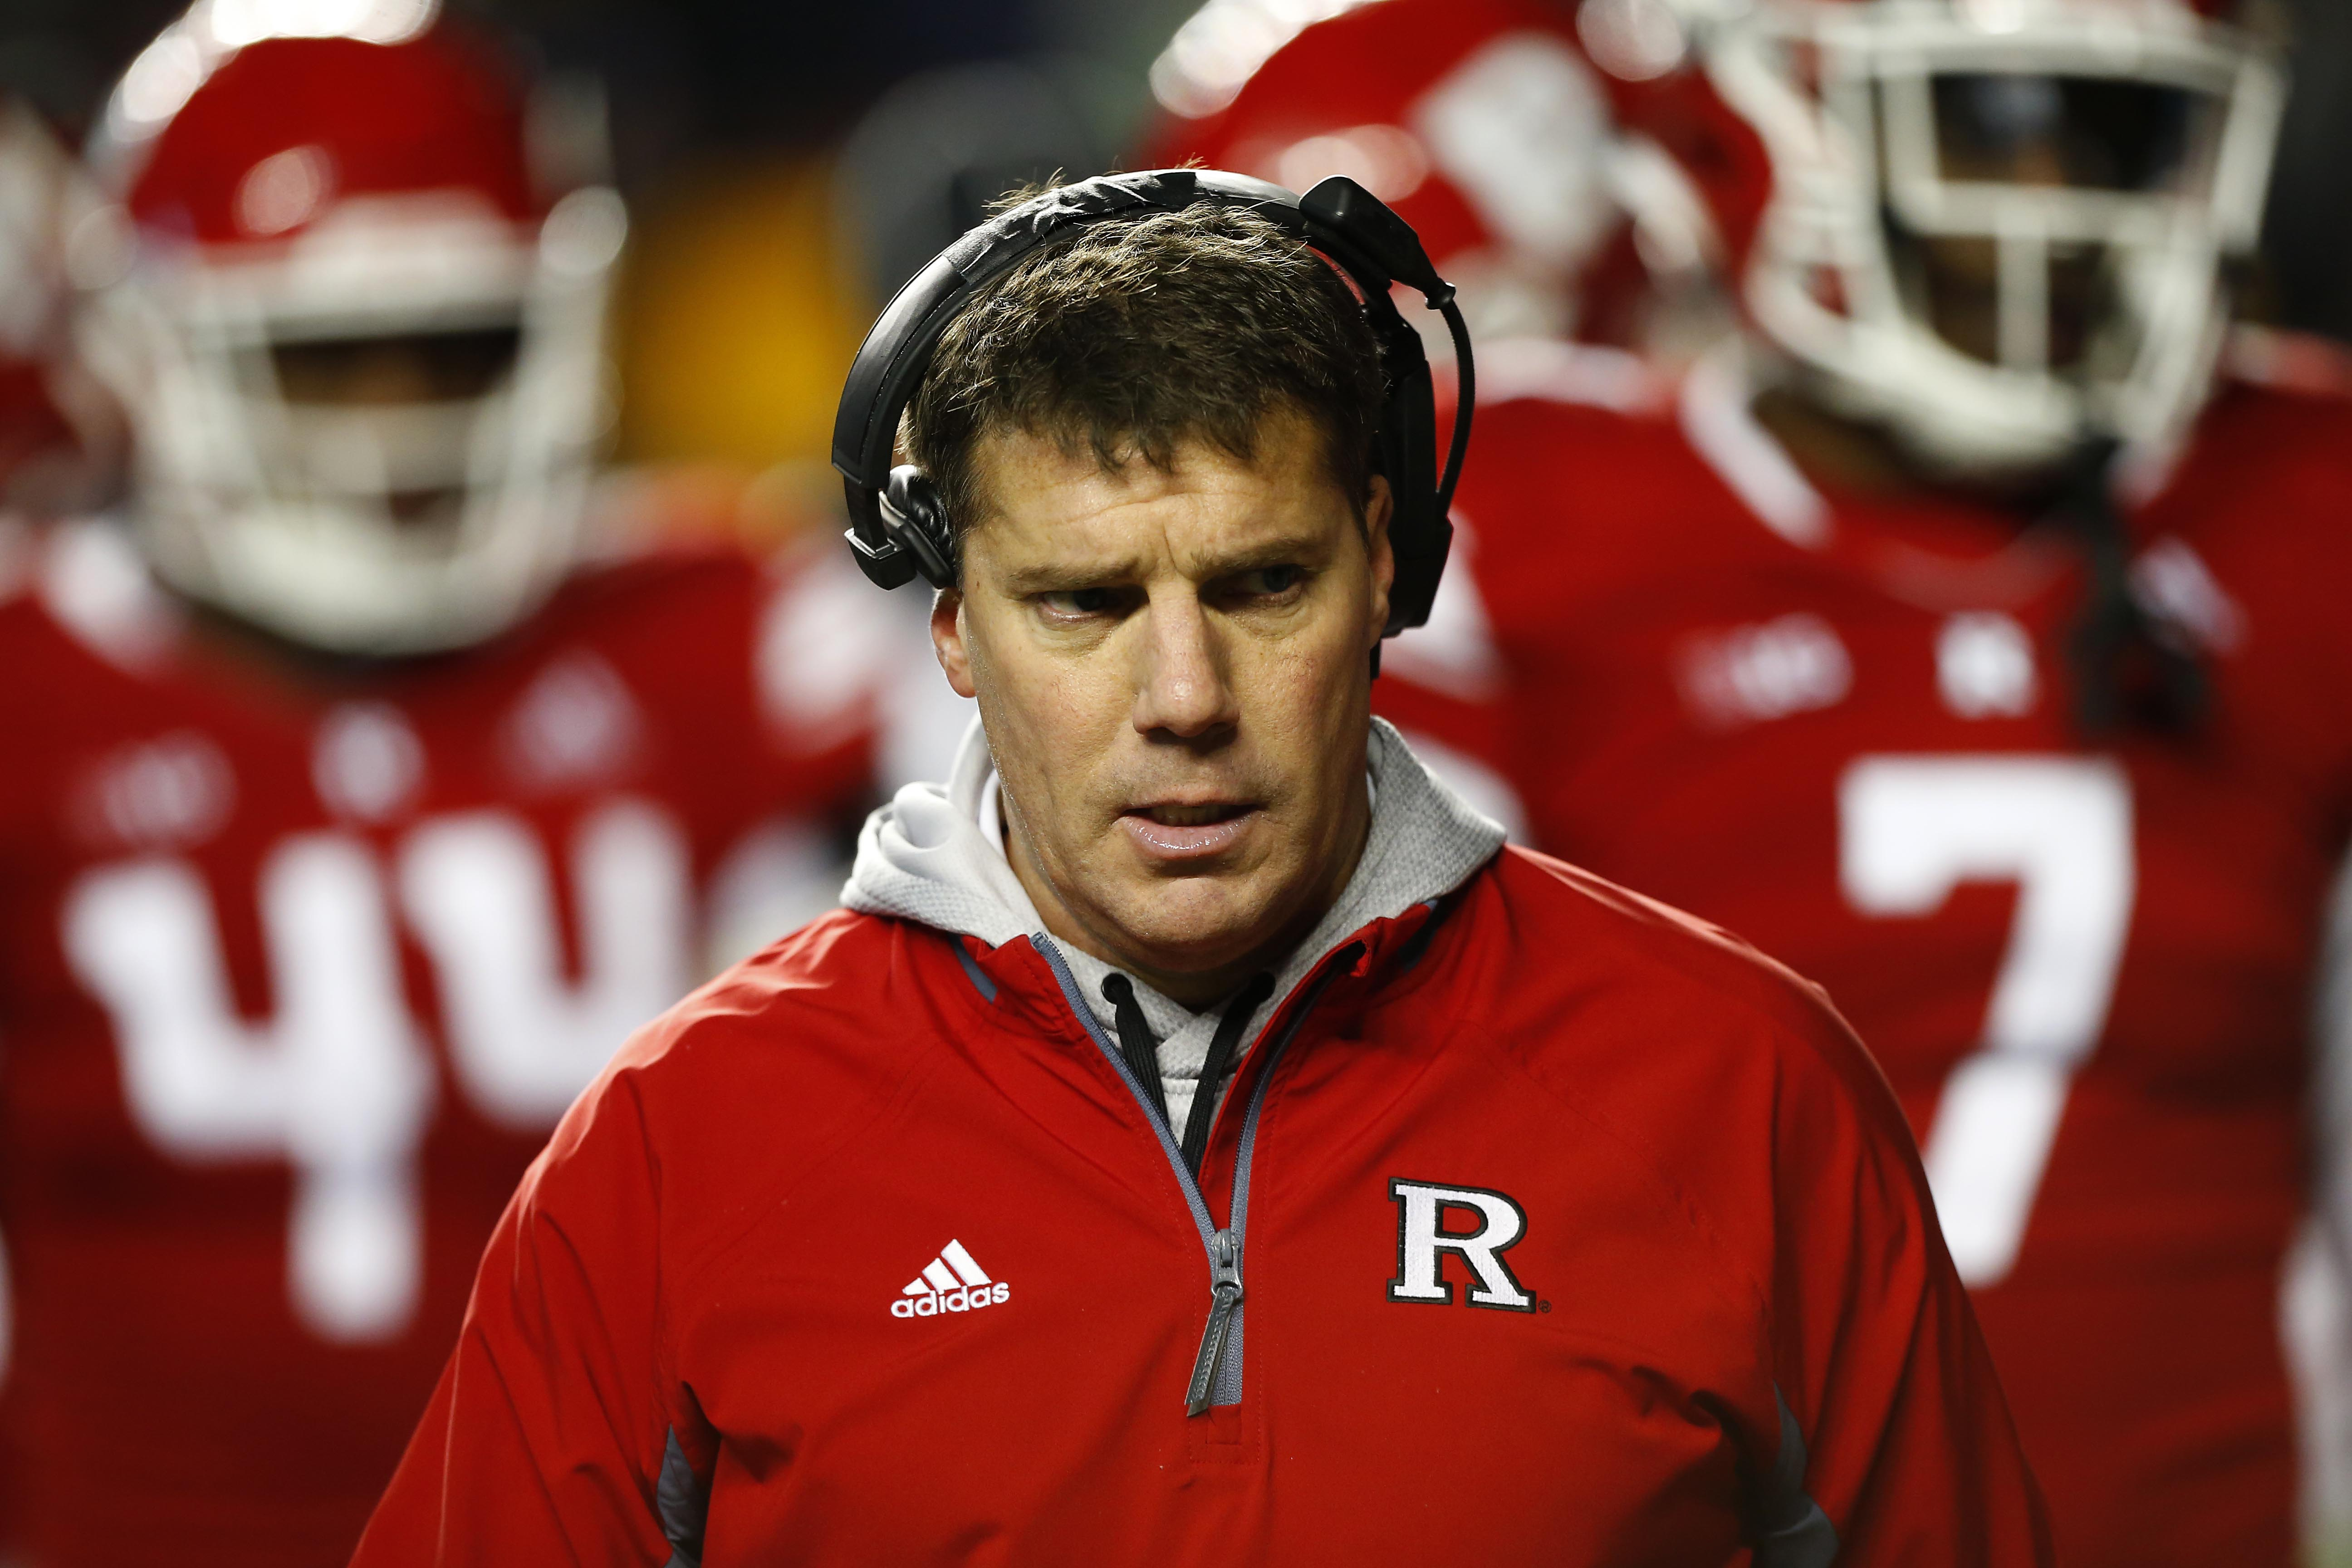 Rutgers Football Recruiting - On the Banks